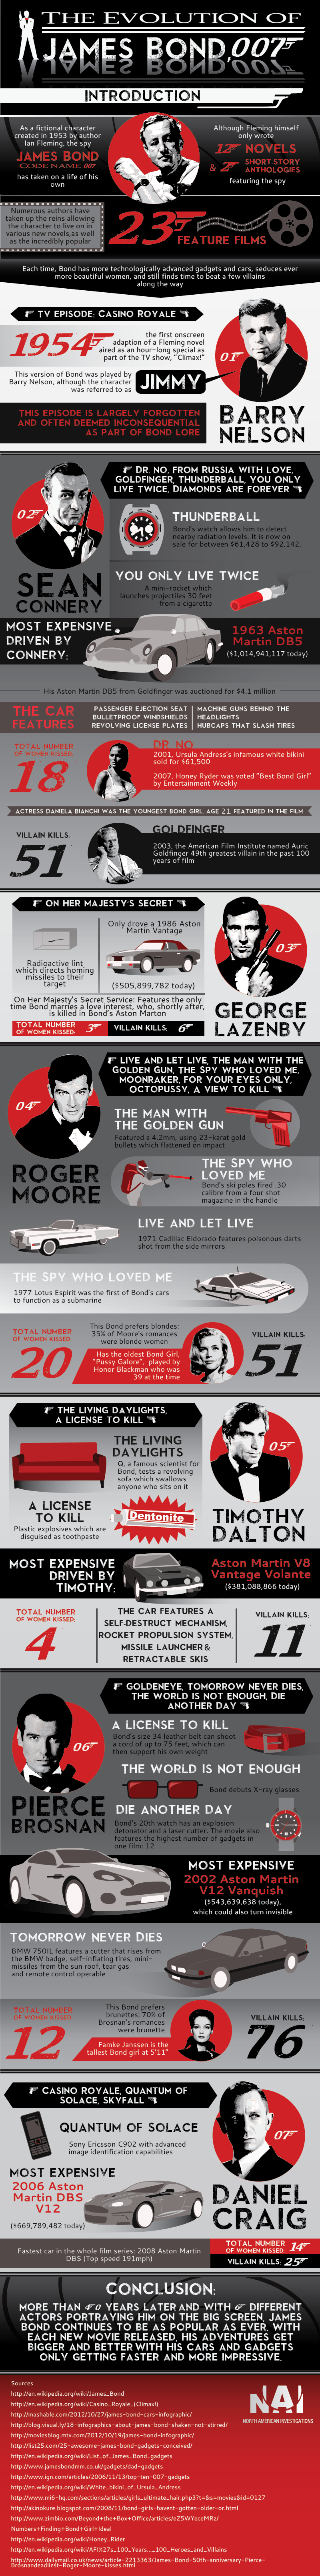 The Evolution of James Bond